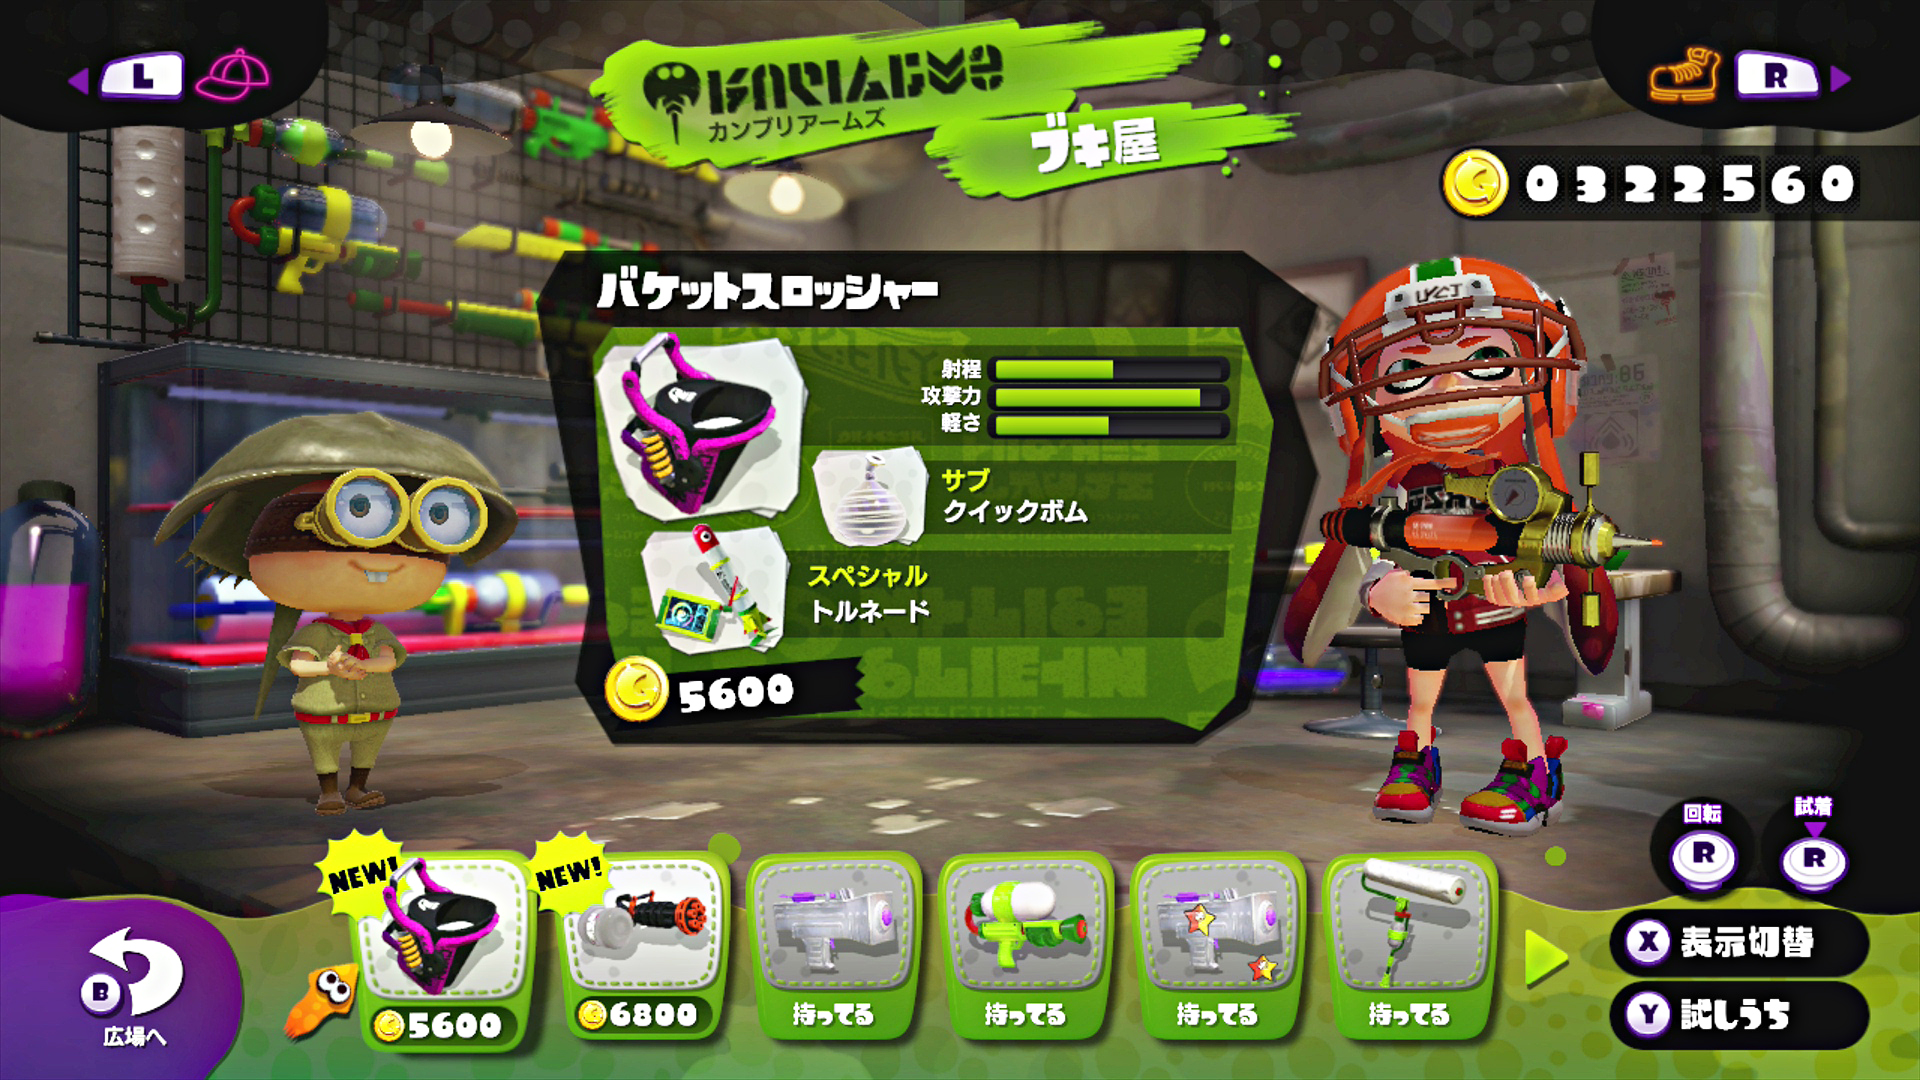 Splatoon_06_04.jpg